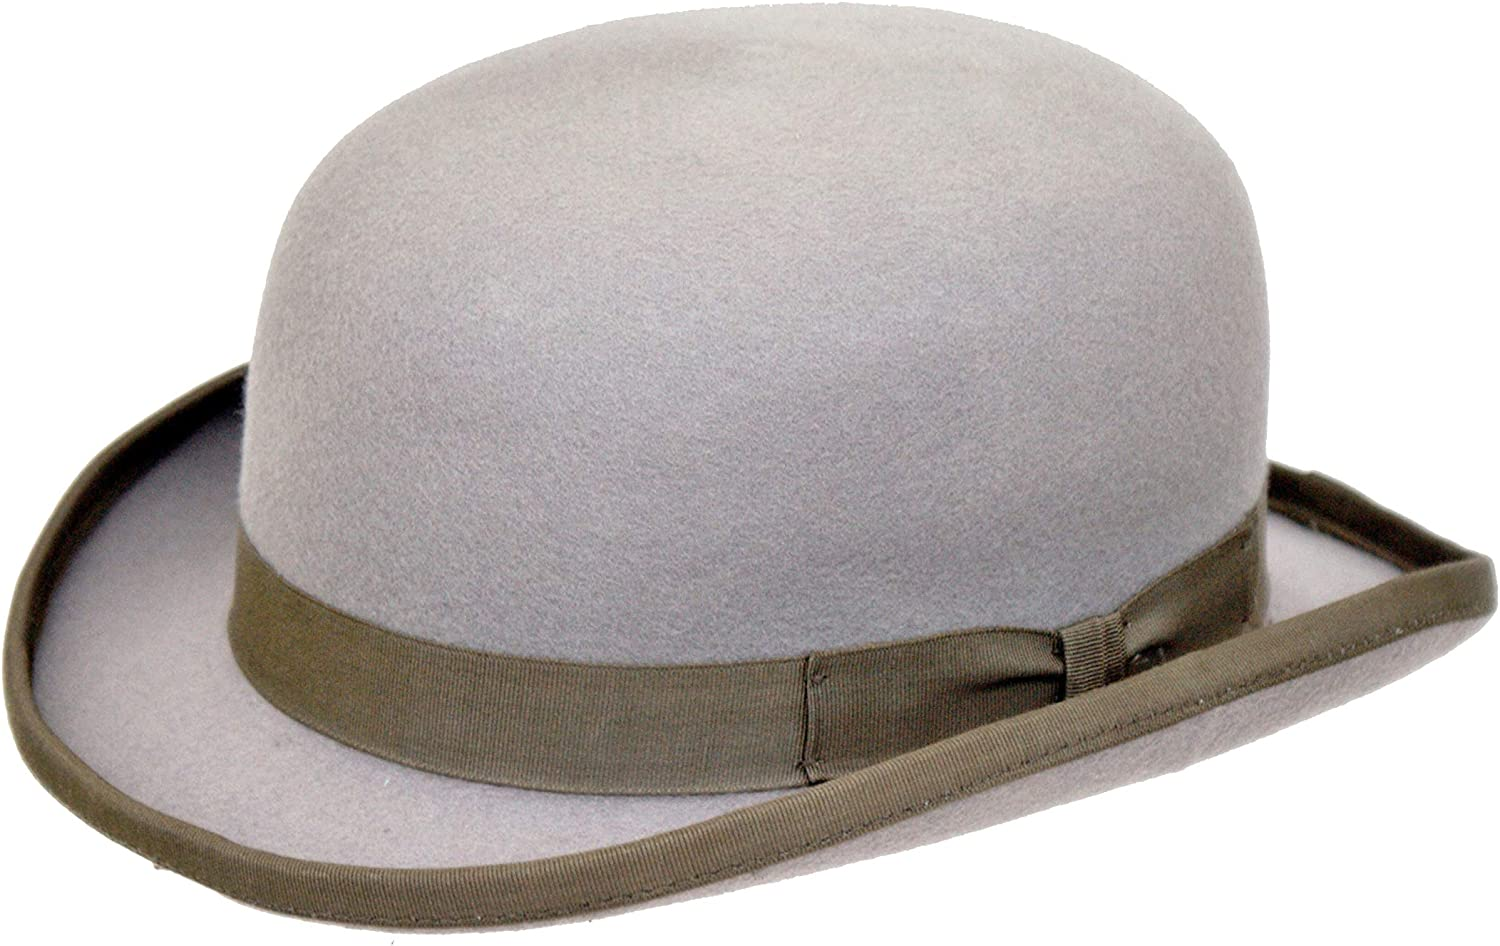 Brand New Men/'s Derby Classic Formal Traditional Wool Black Fashion Bowler Hat